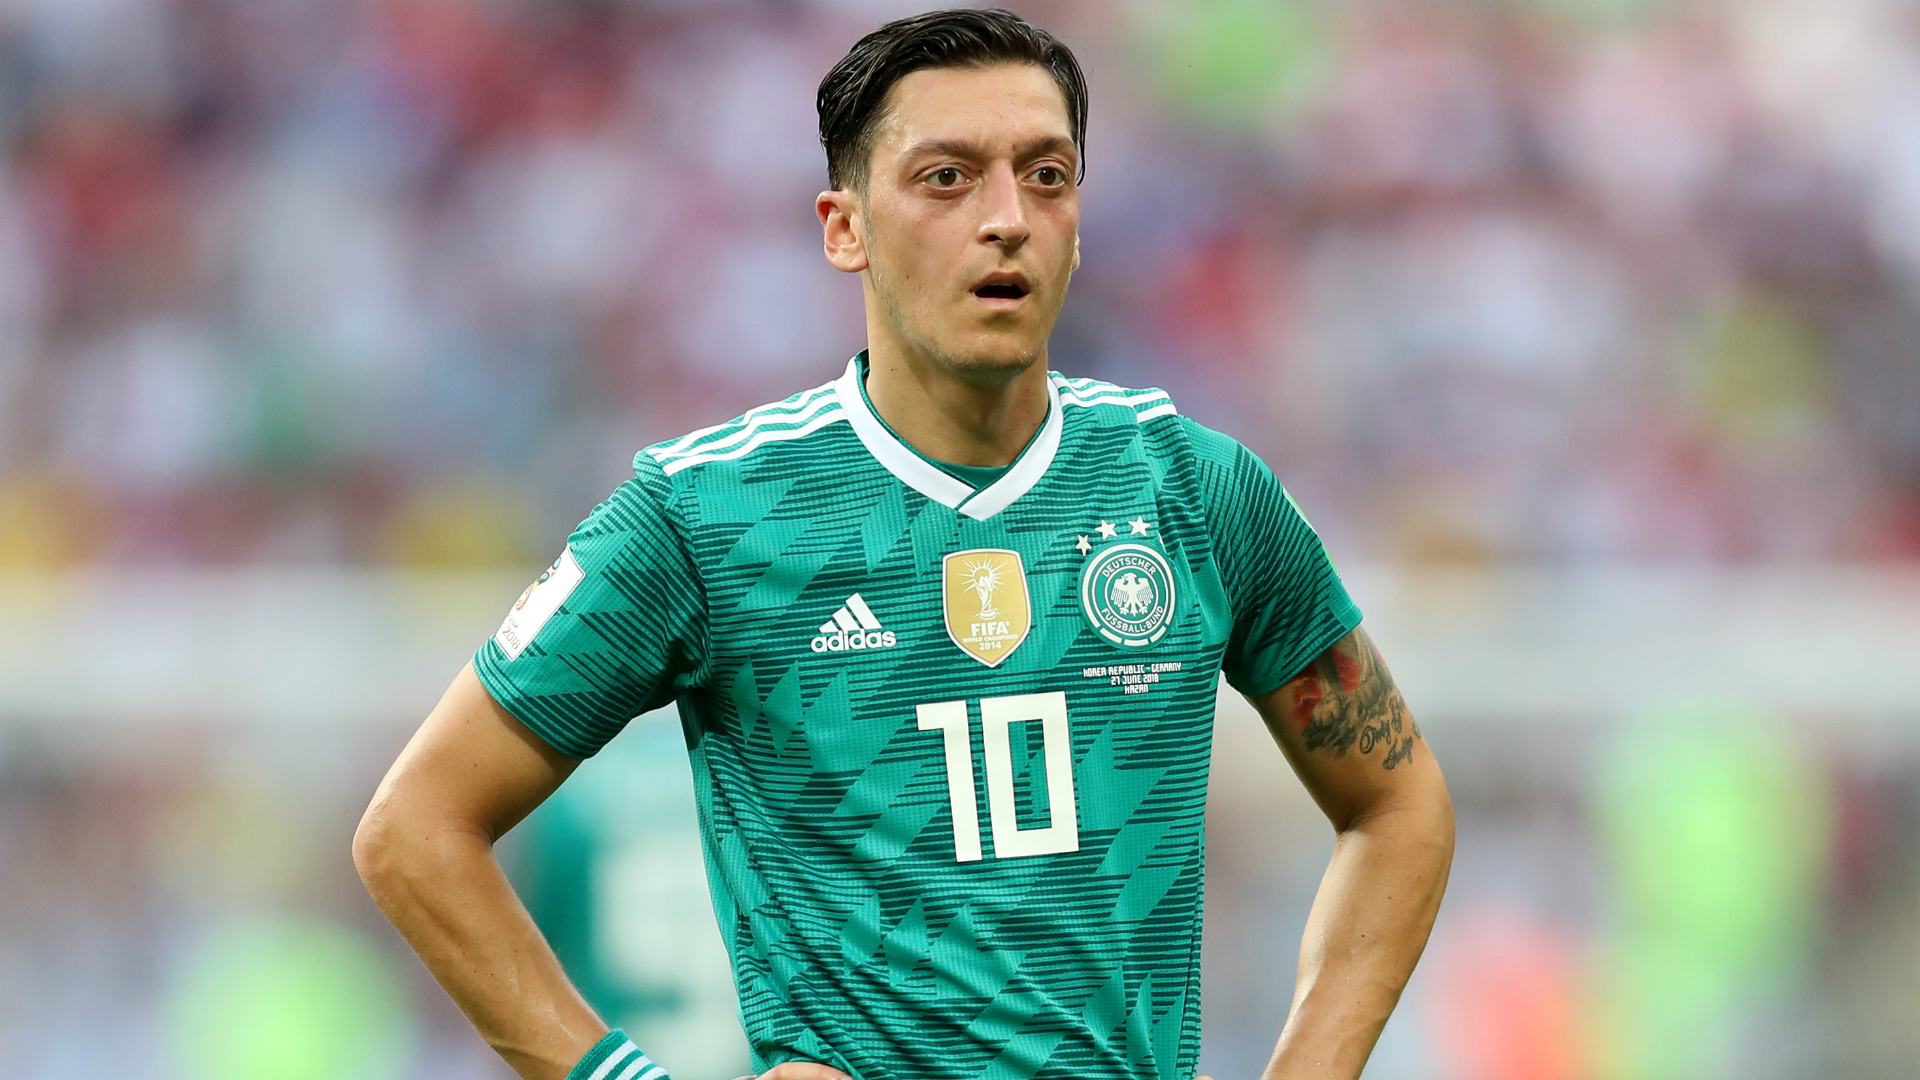 502c88d1639 Emery ready to get best out of Ozil at Arsenal